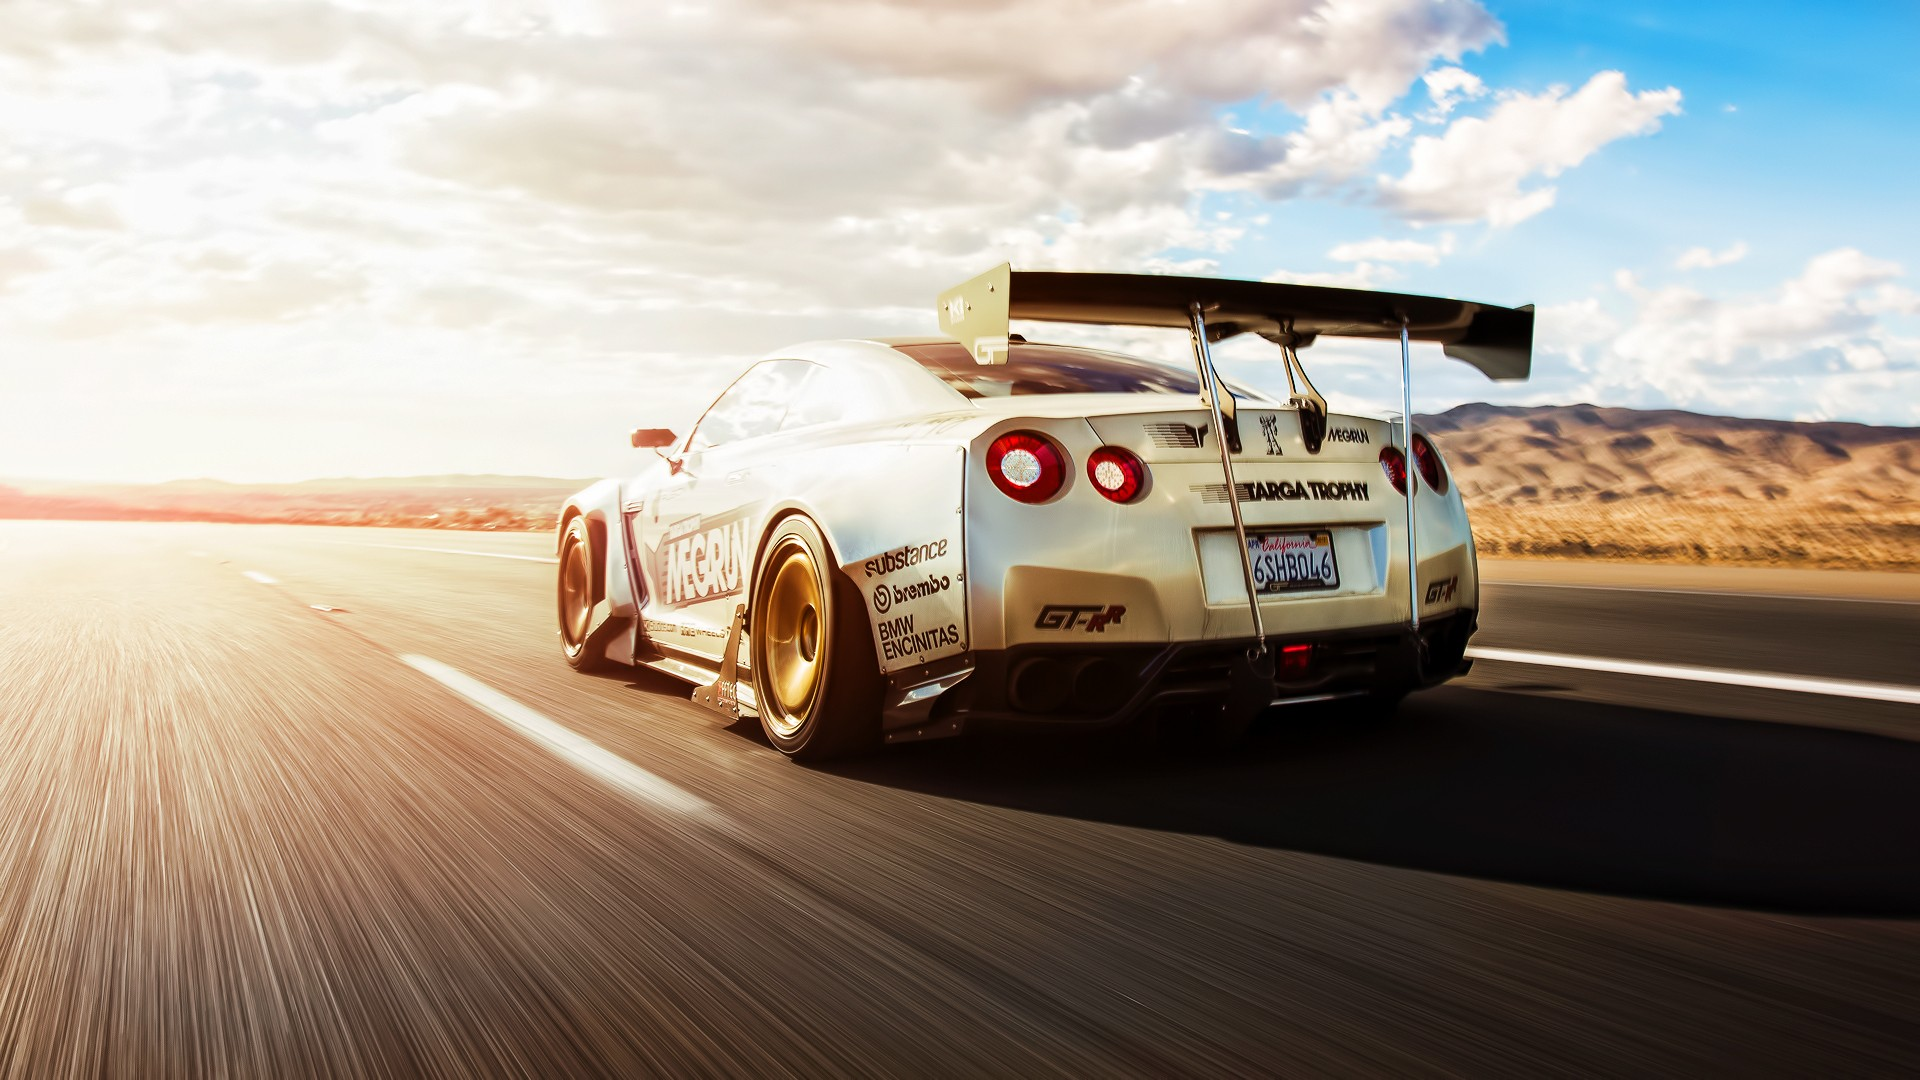 Cool Cars Drifting Wallpapers Hd Car Tuning Nissan Skyline Gt R R35 Wallpapers Hd